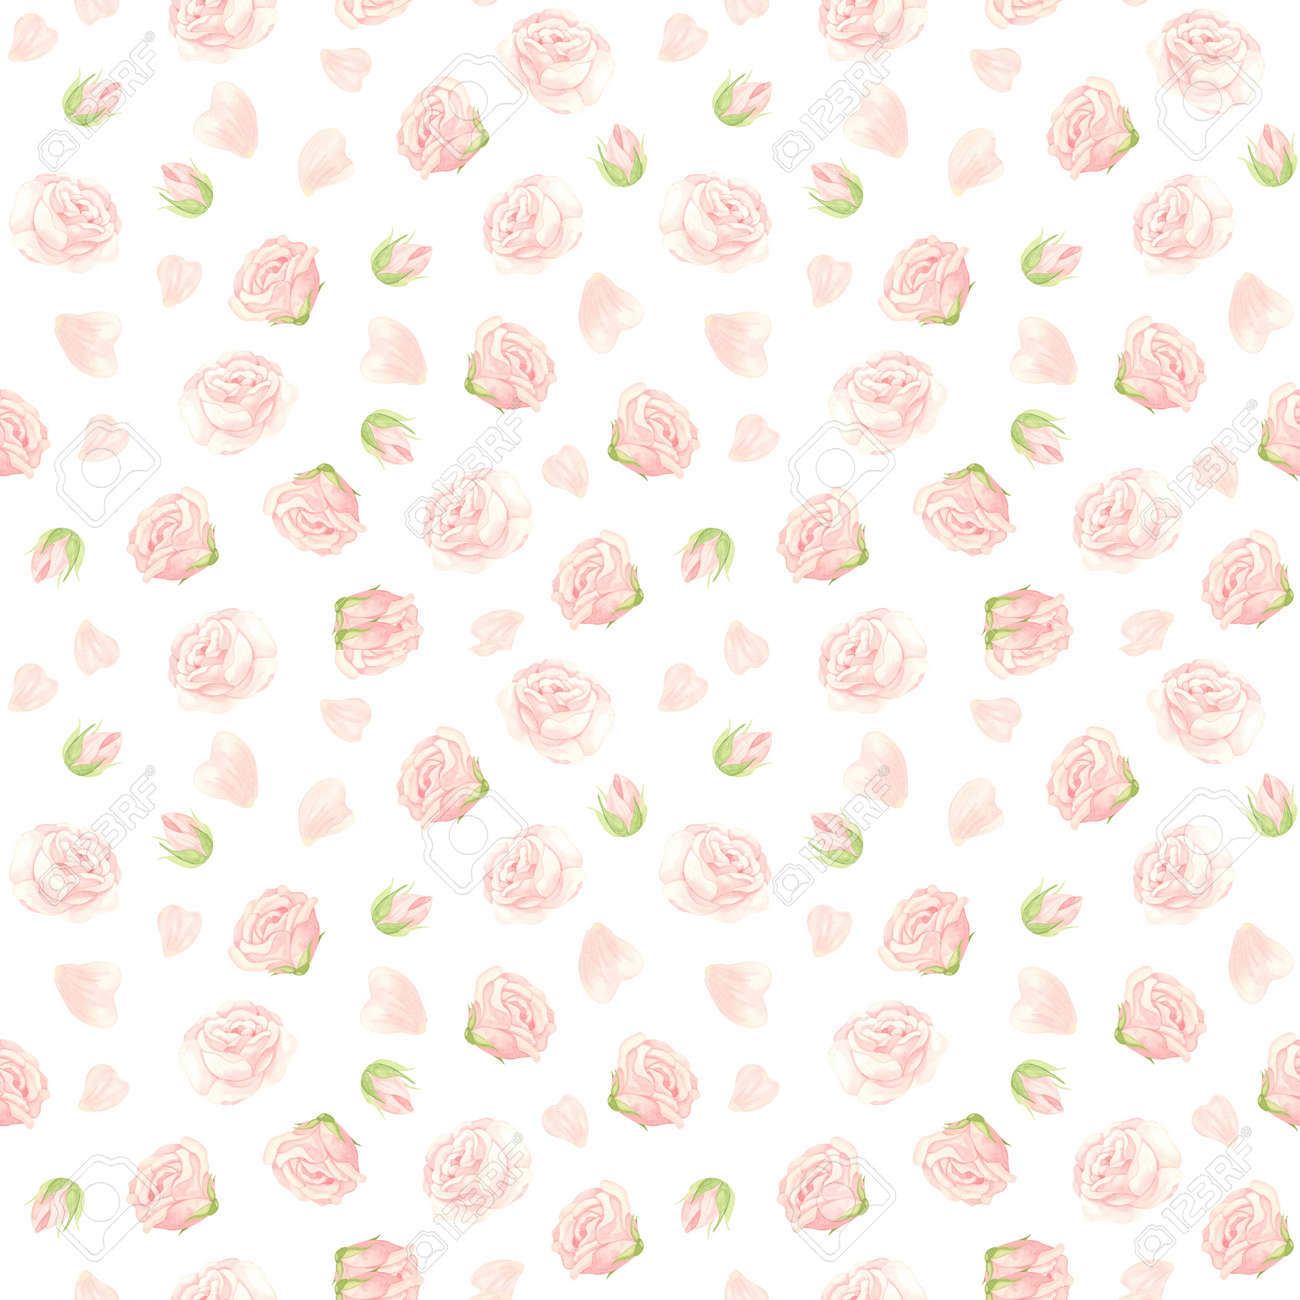 Pink roses seamless pattern. Flowers, buds and rose petals. Floral background in vintage style. Watercolor clipart. - 171478276